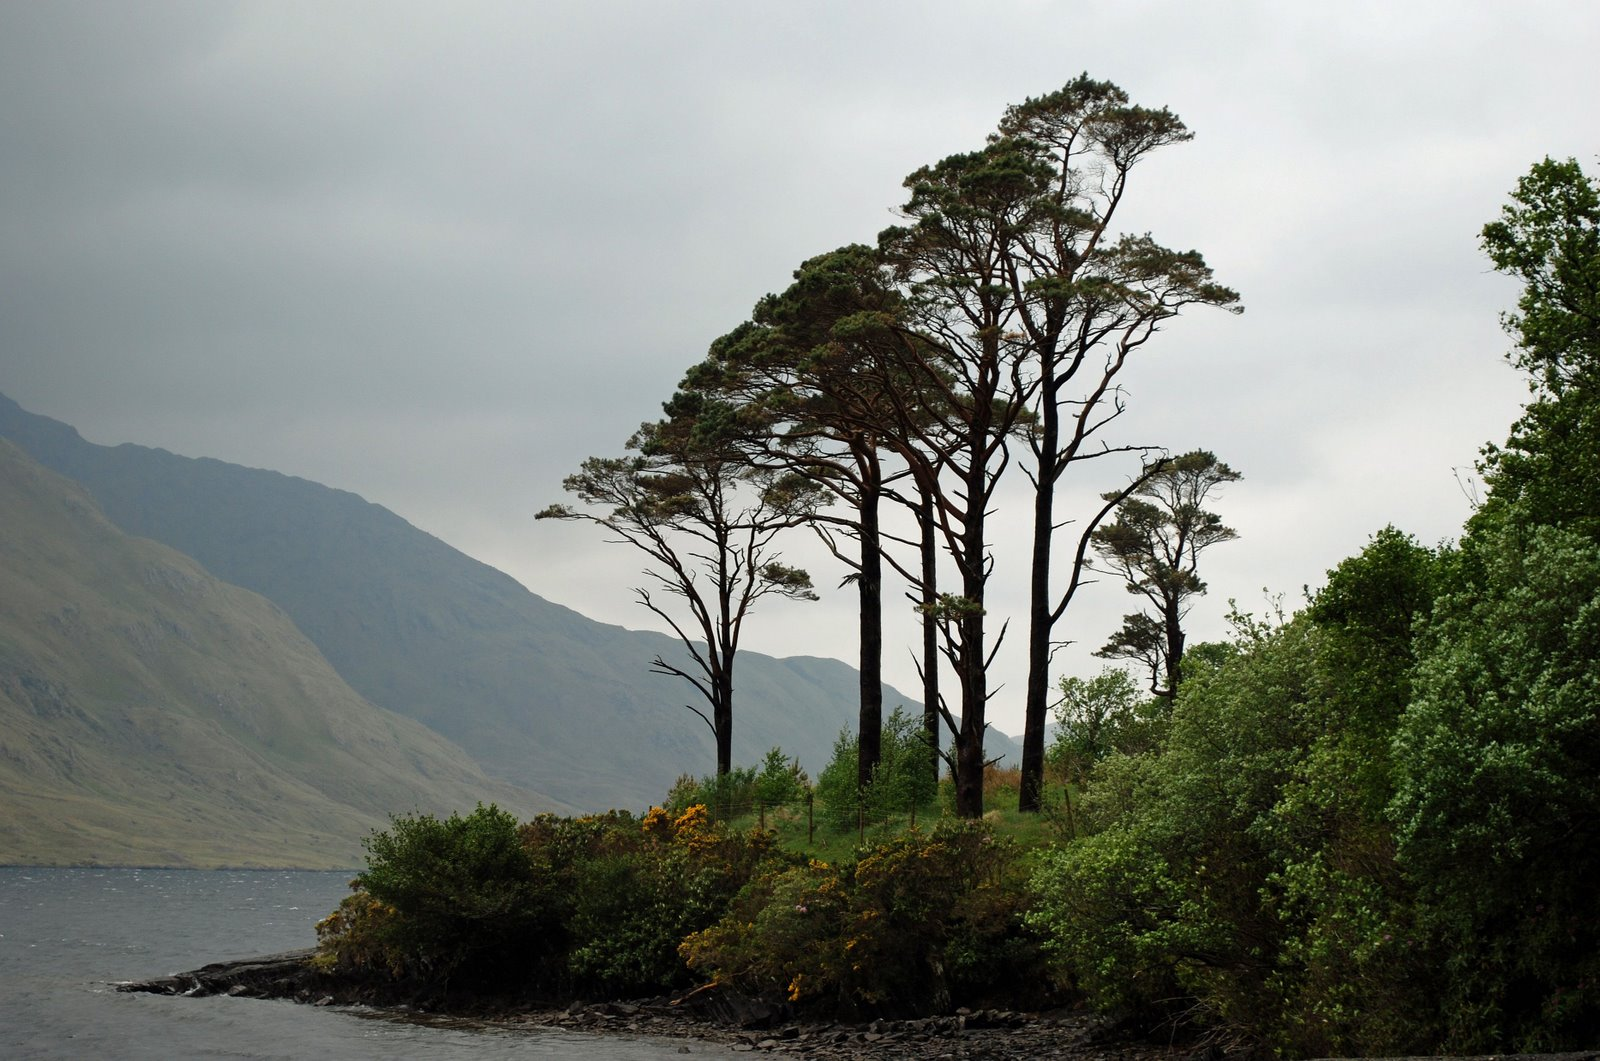 doo lough, county mayo, ireland